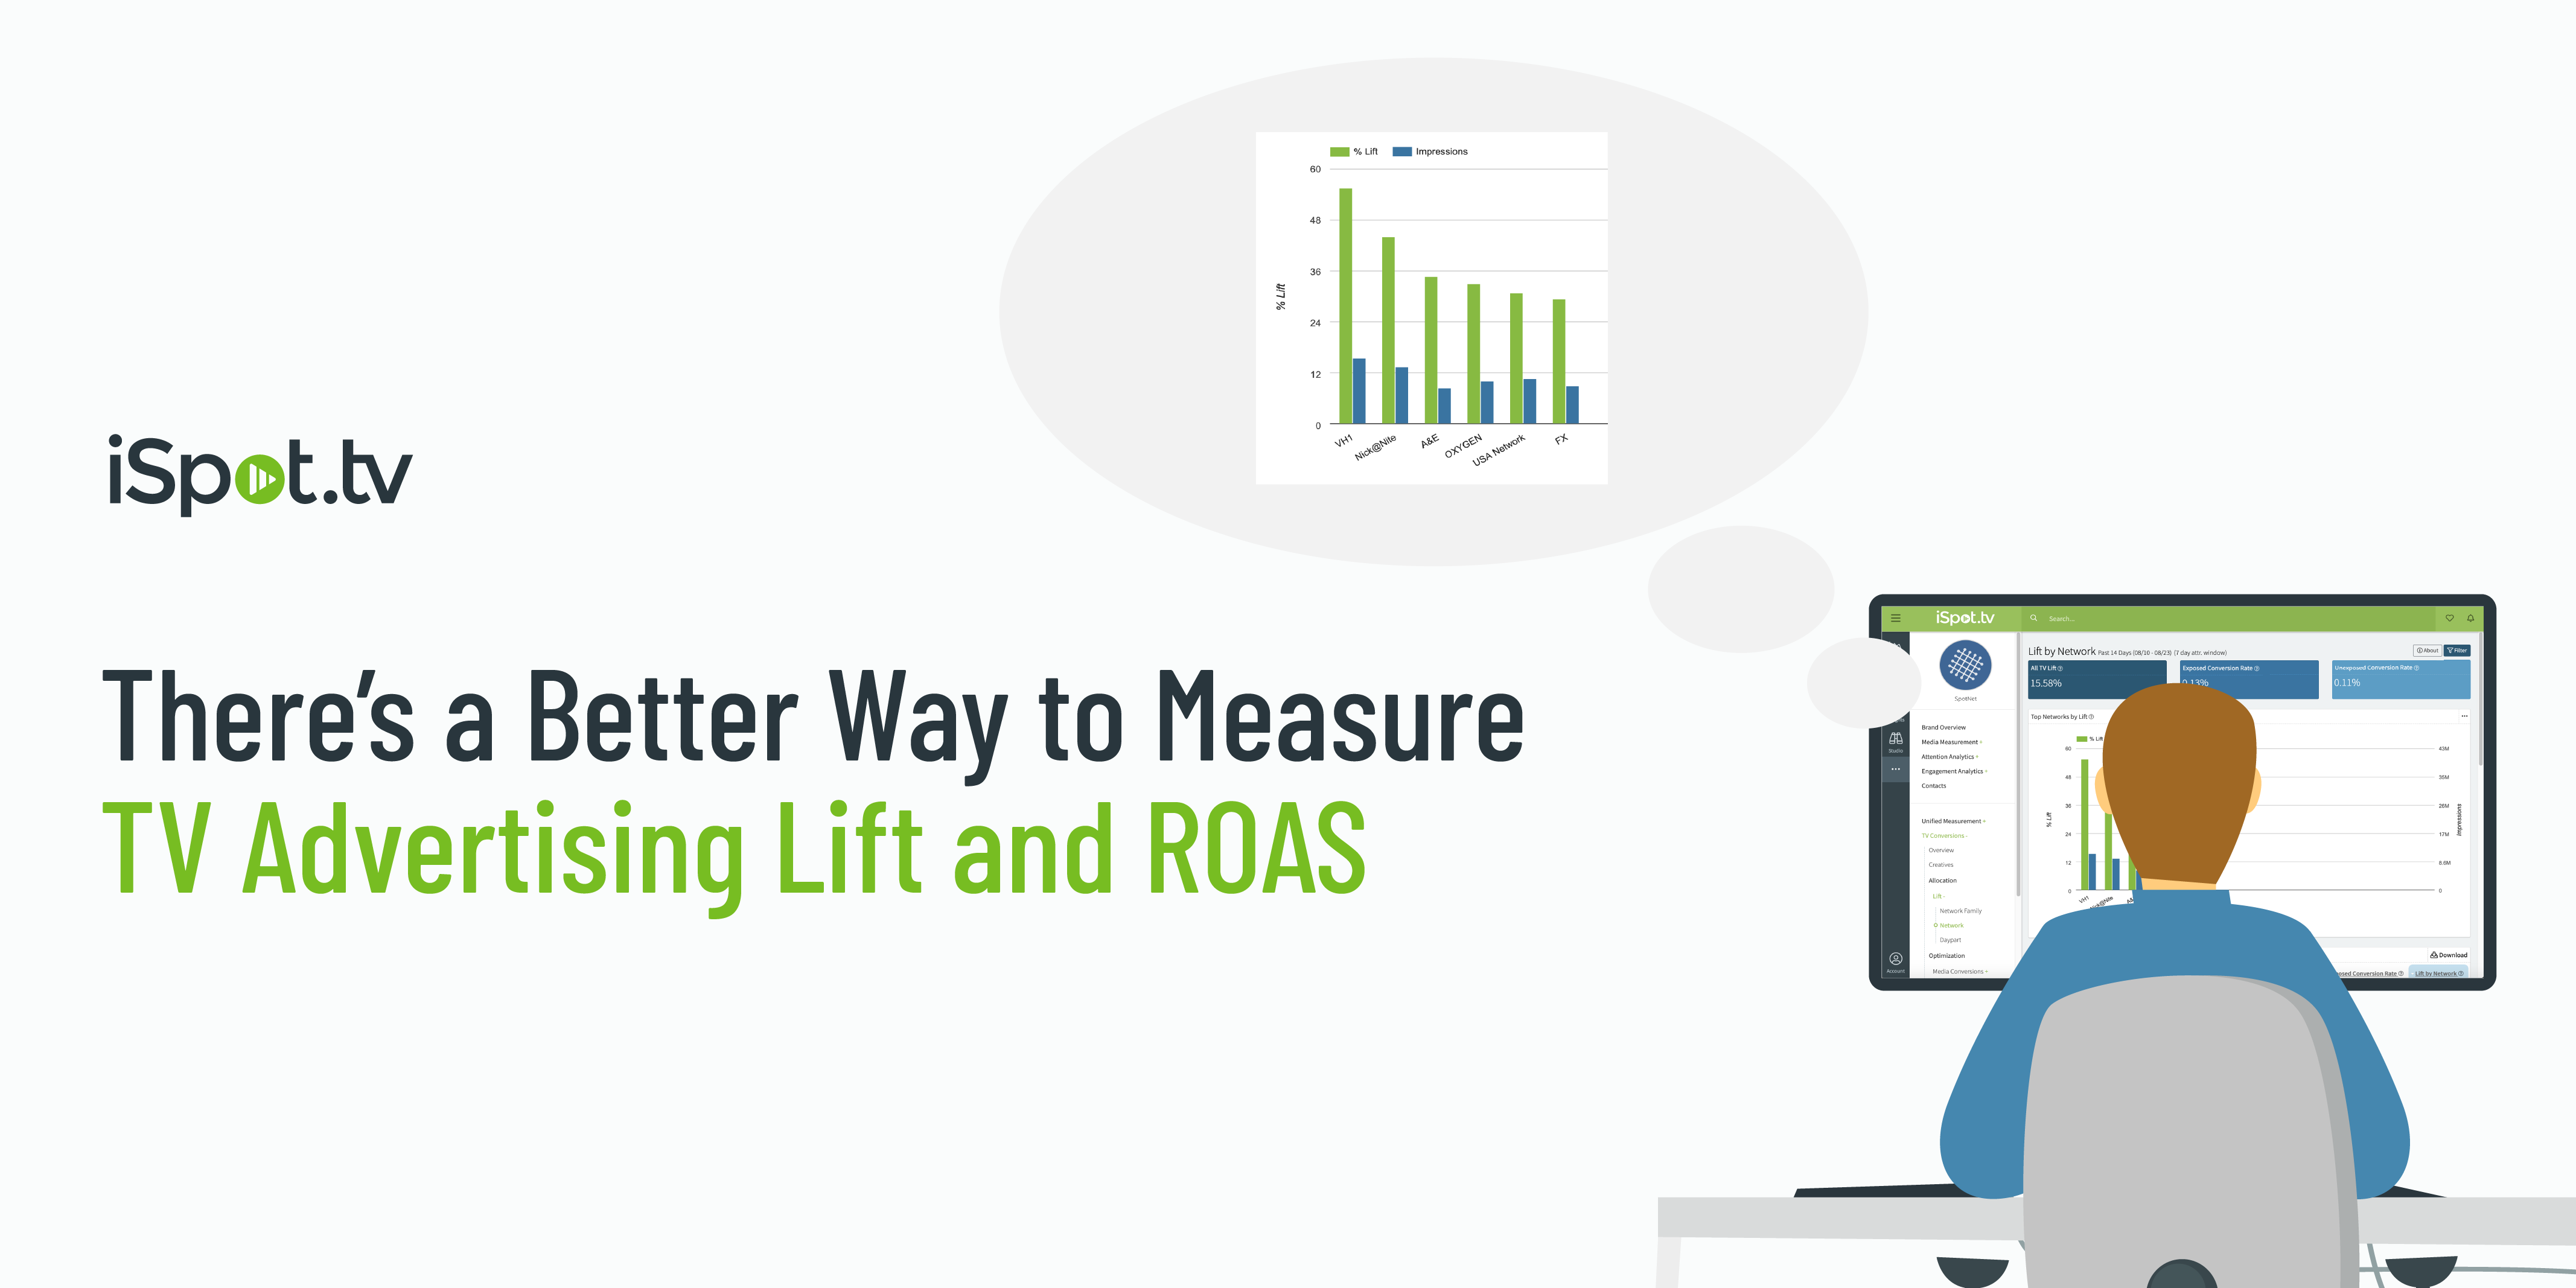 There's a better way to measure lift